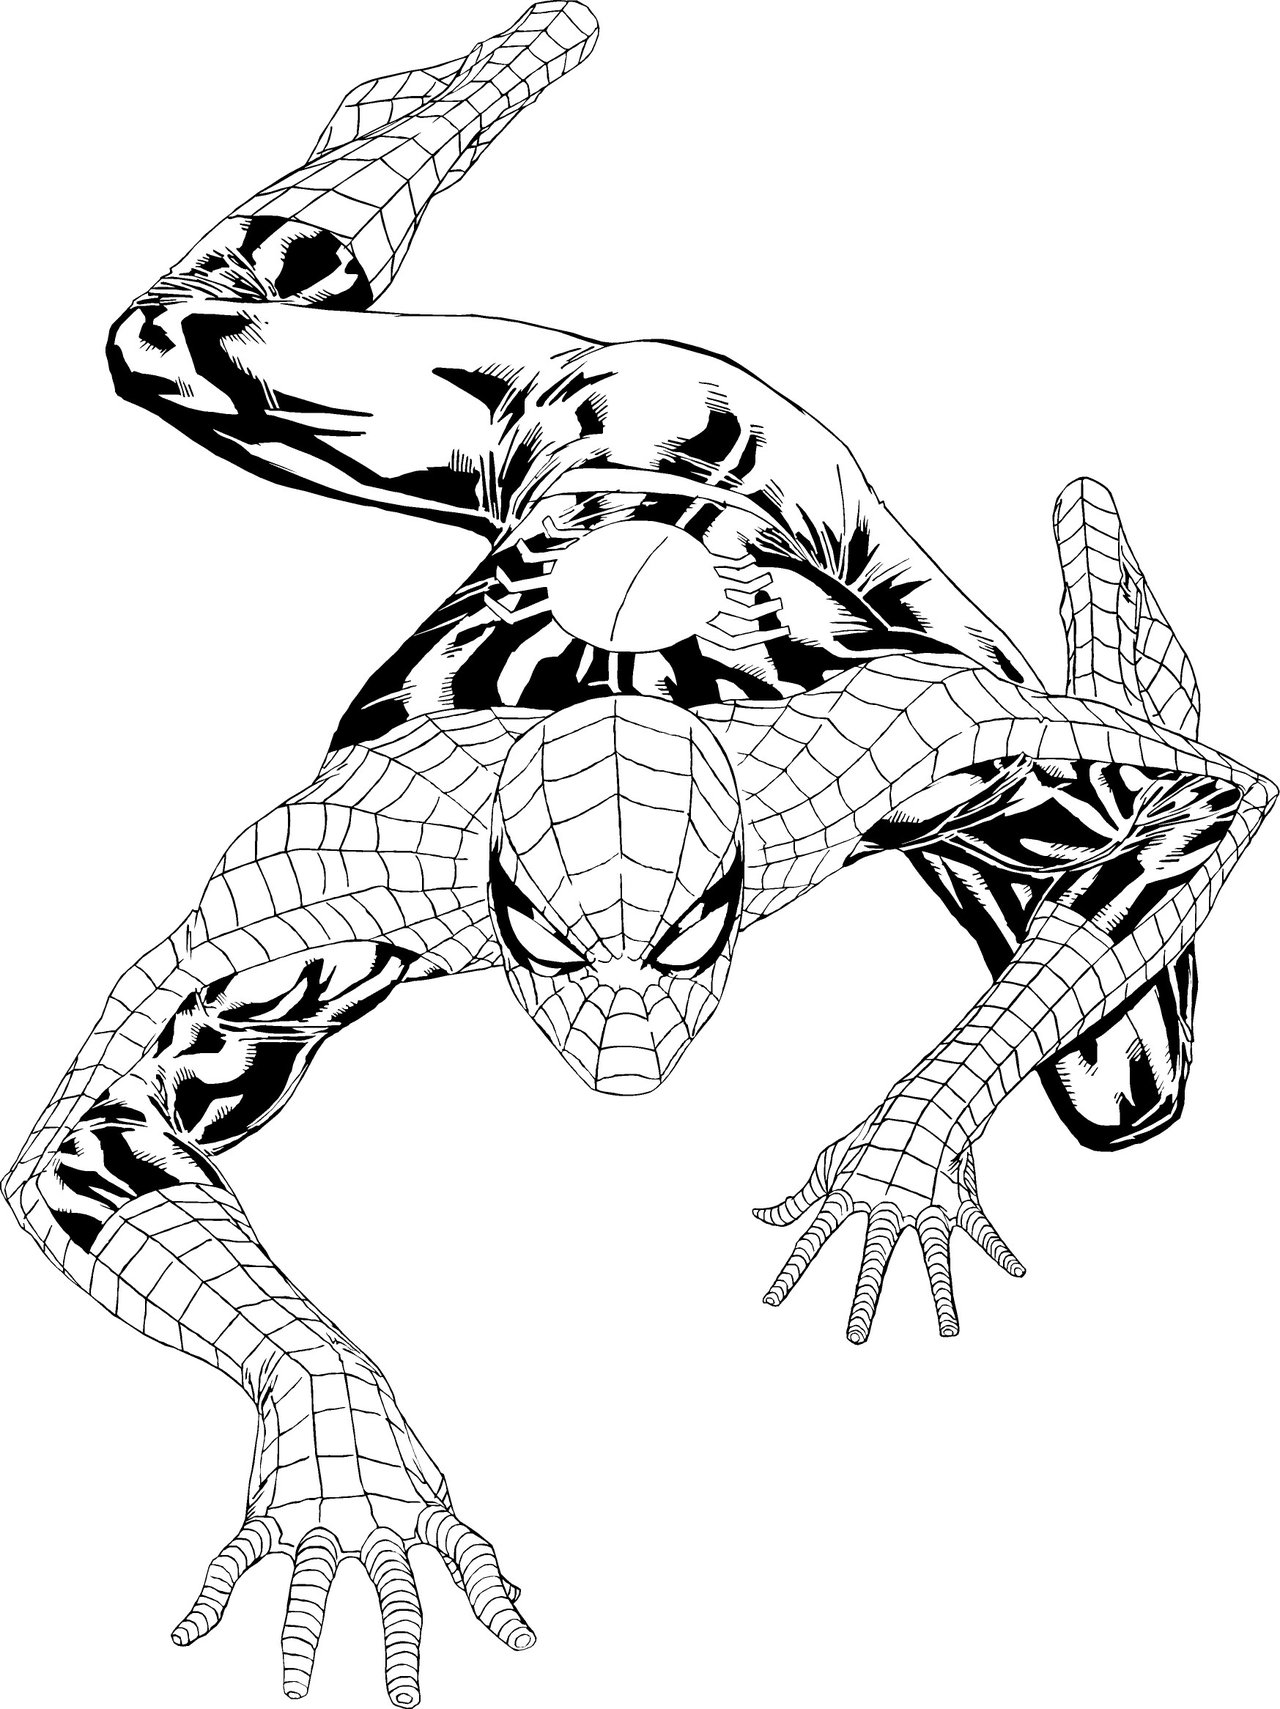 Galerry spiderman coloring book page